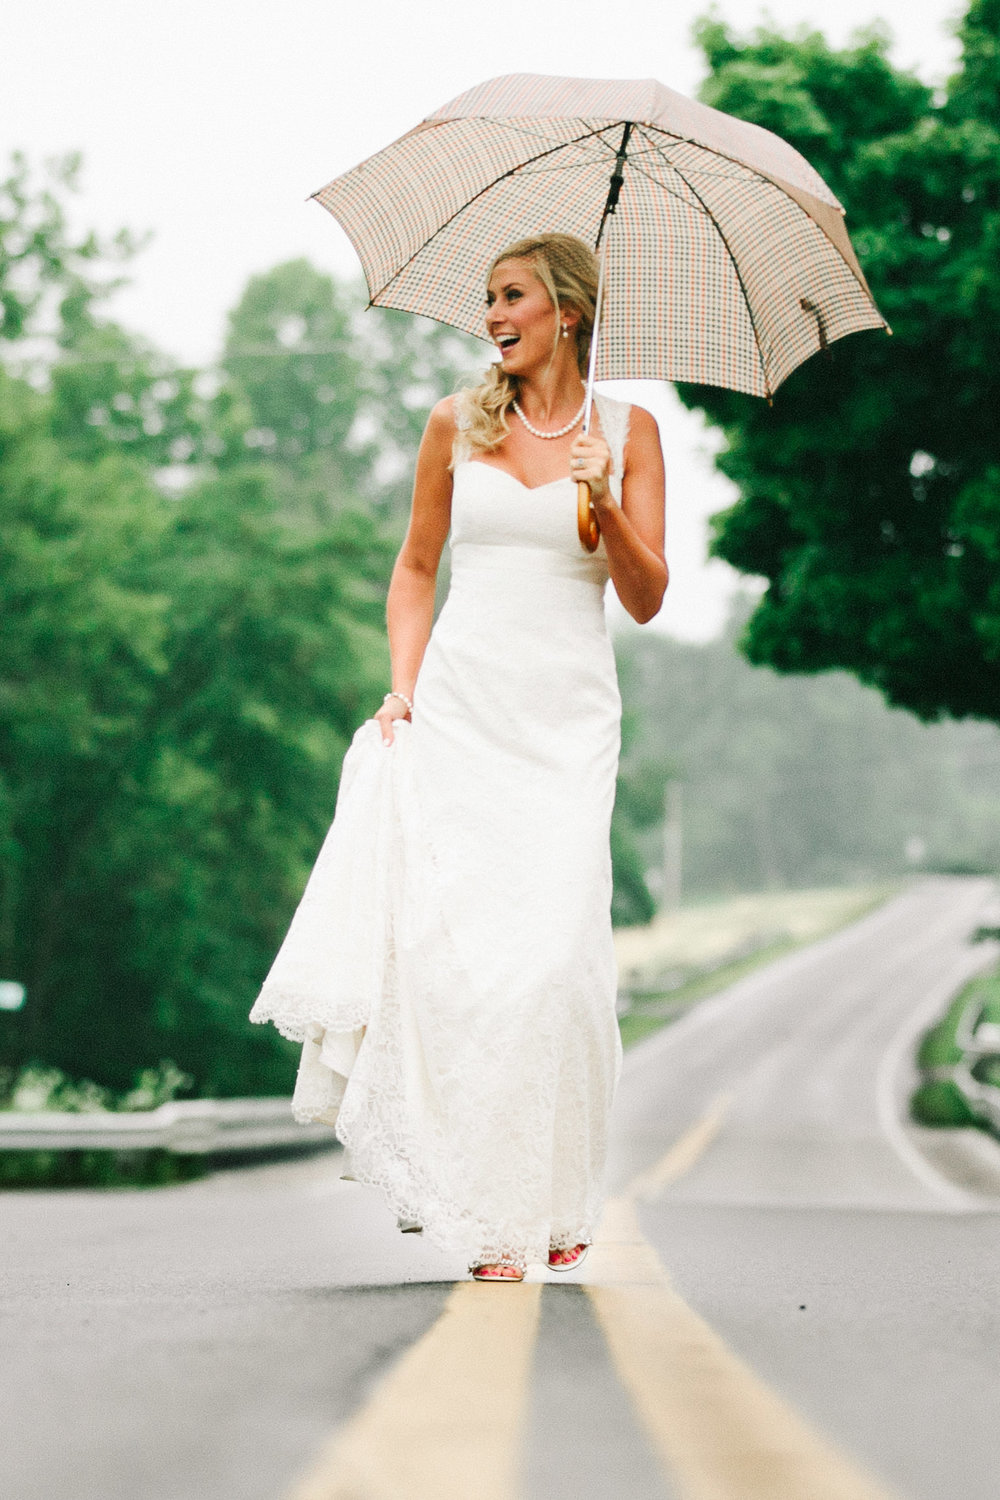 Robb McCormick Photography - Wedding Photographer (80 of 128).jpg